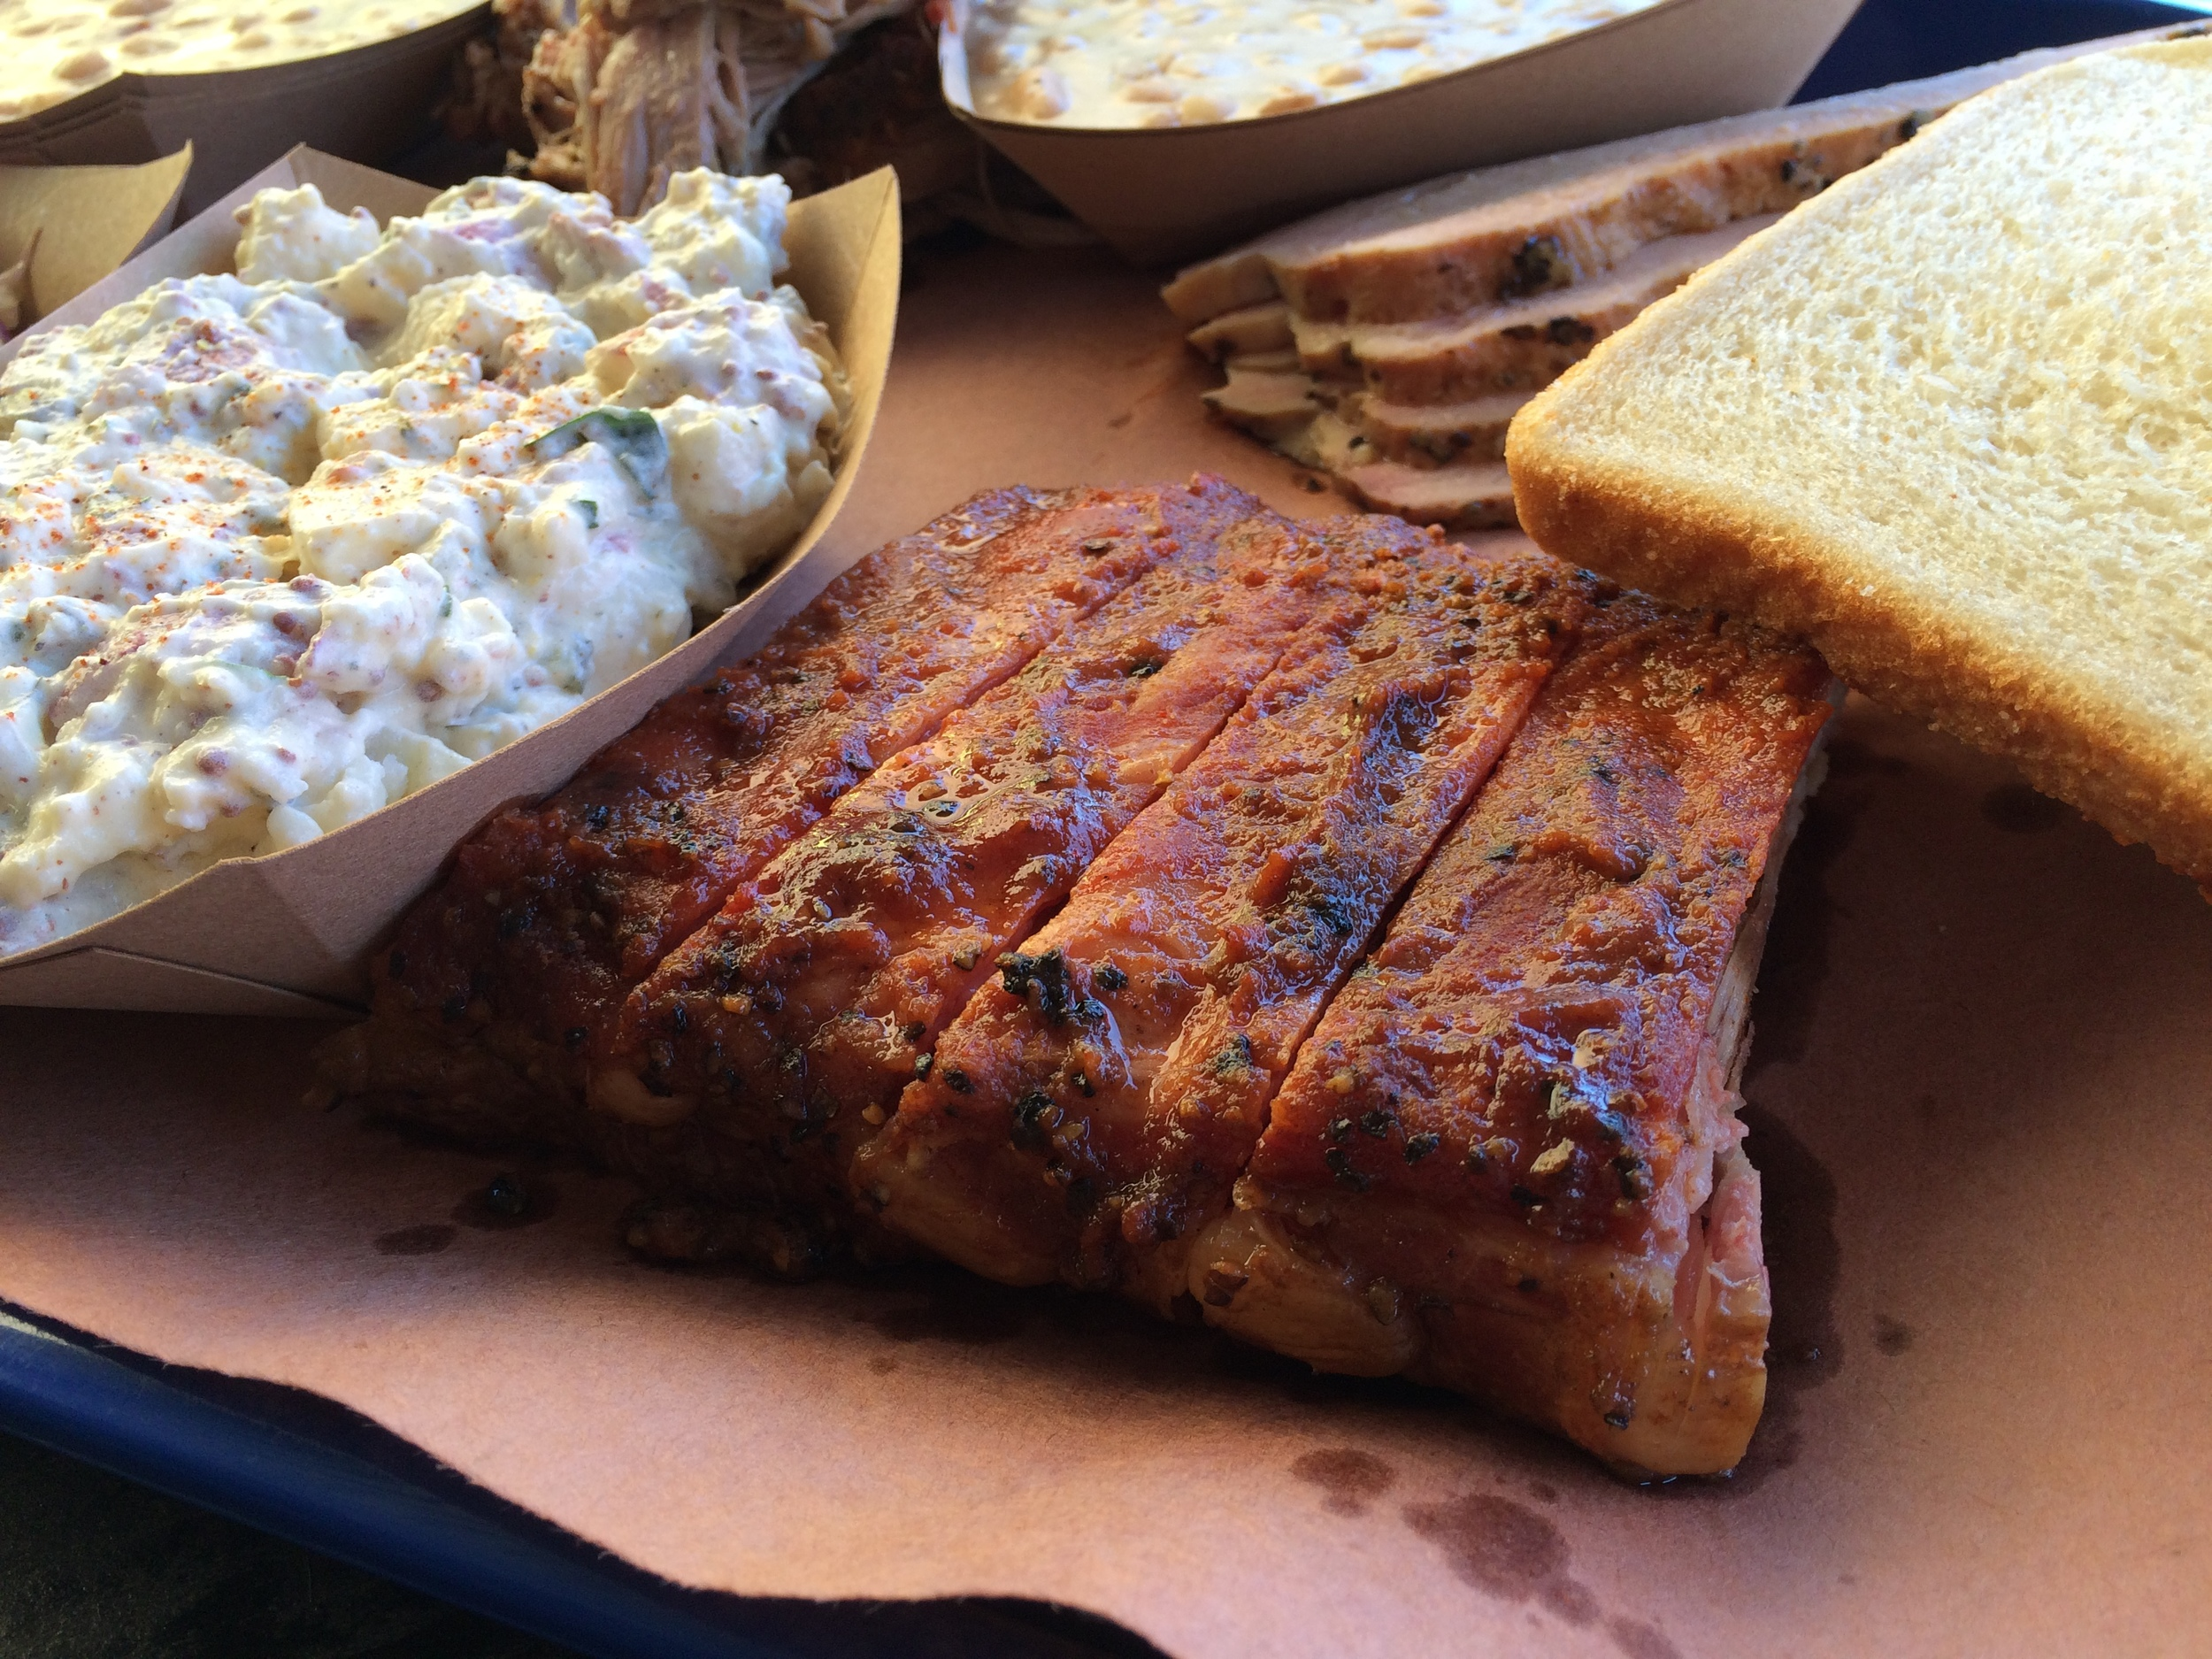 Yes, best ribs in San Diego!